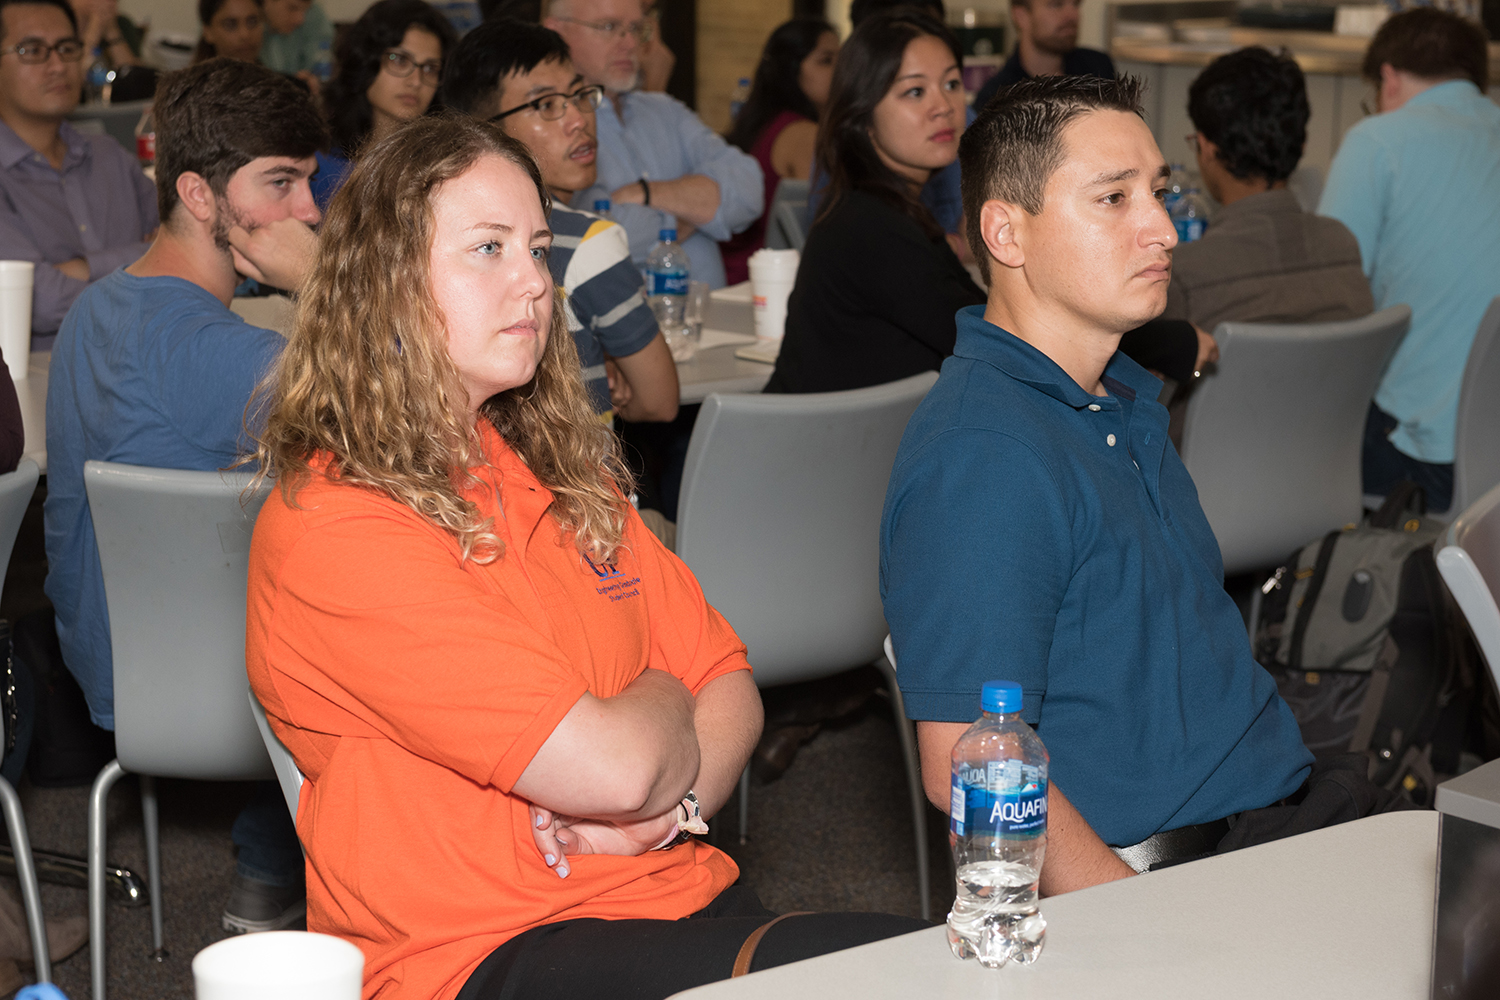 Pictured Left to Right: Julie Jameson (UF Chemical Engineering), Lab Safety Manager for Dr. Tanmay Lele's lab, and James Fleetwood, Laboratory Safety Coordinator for the Herbert Wertheim College of Engineering.